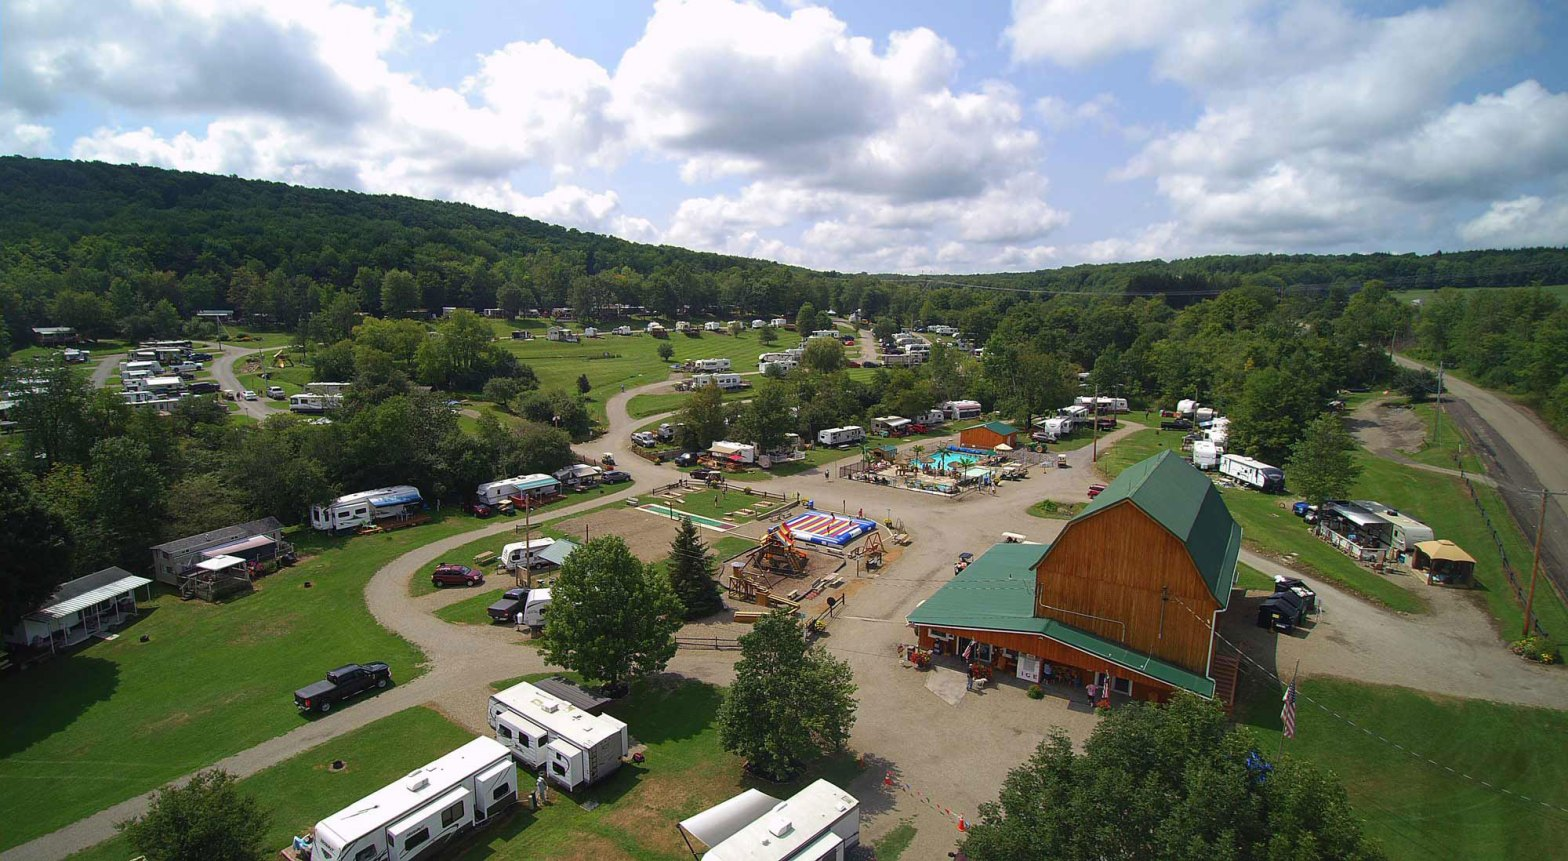 Aerial view of Triple R Campground with pool and barn